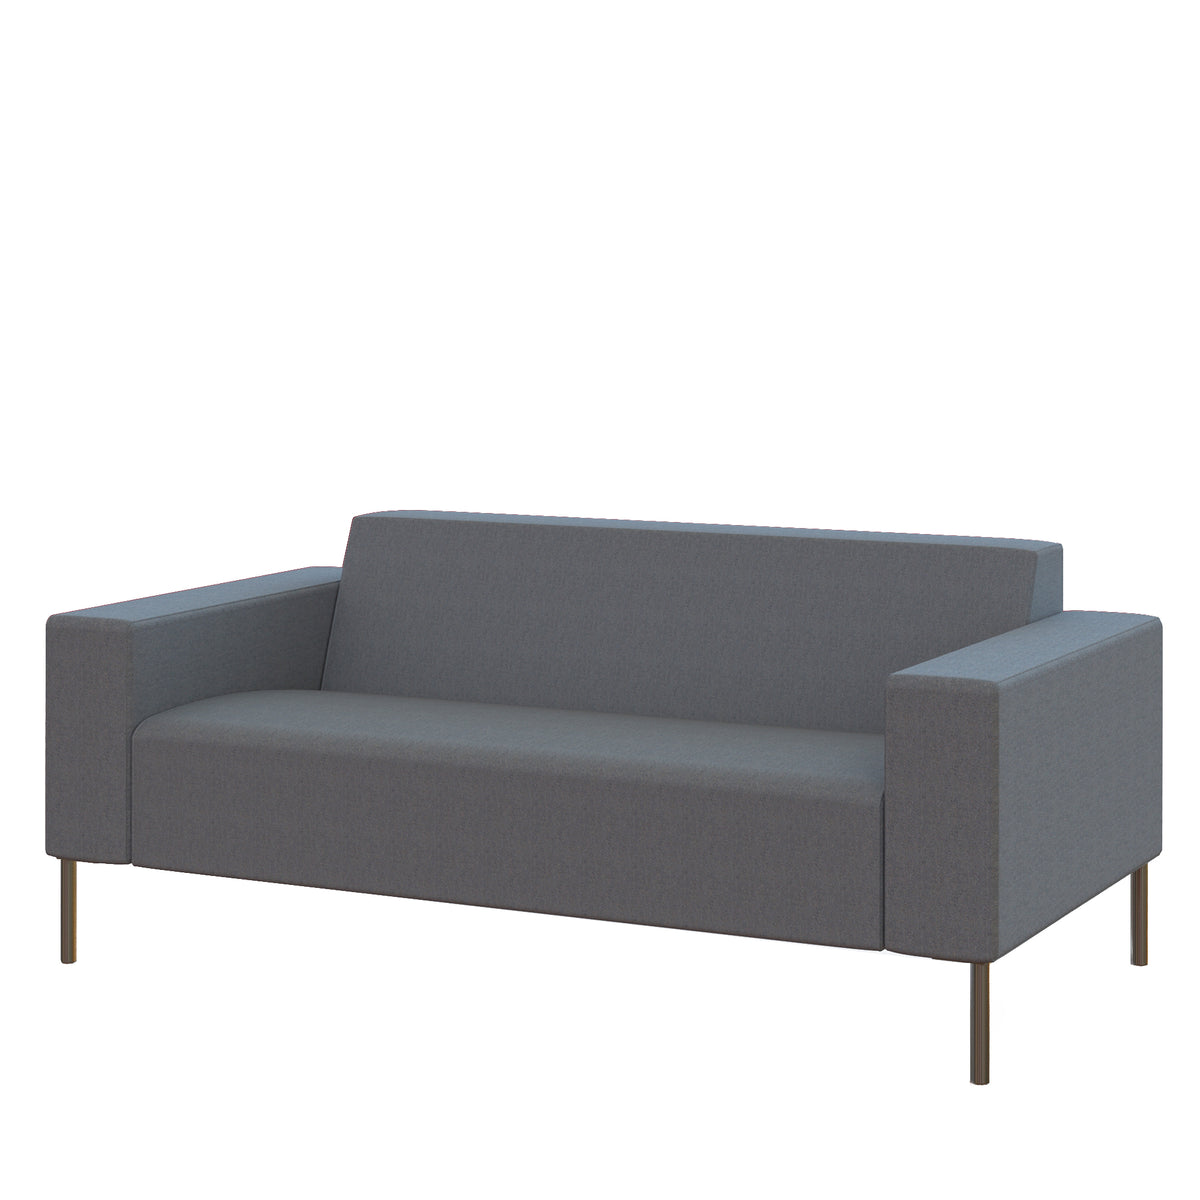 Hitch Mylius Office HM18 Westminster Origin Two Seat Sofa with Brushed Stainless Steel Legs